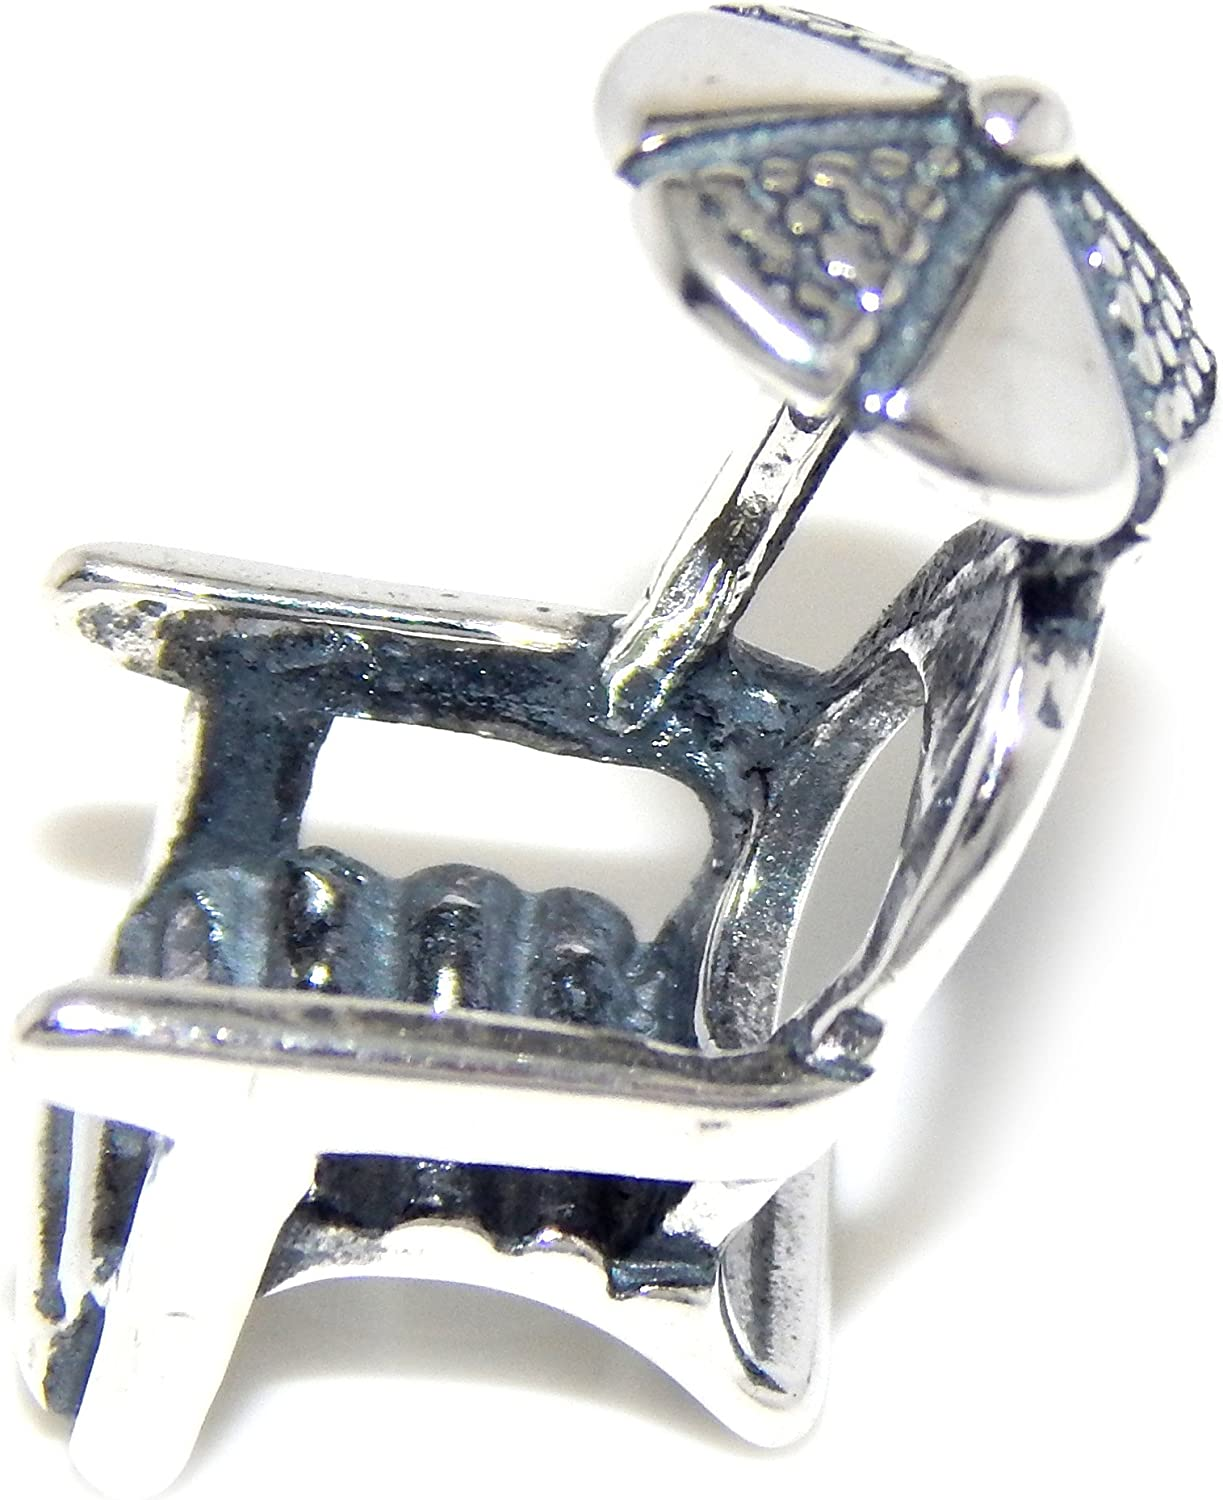 Solid 925 Sterling Silver Beach Chair w// Umbrella Charm Bead 3000 for European Snake Chain Bracelets